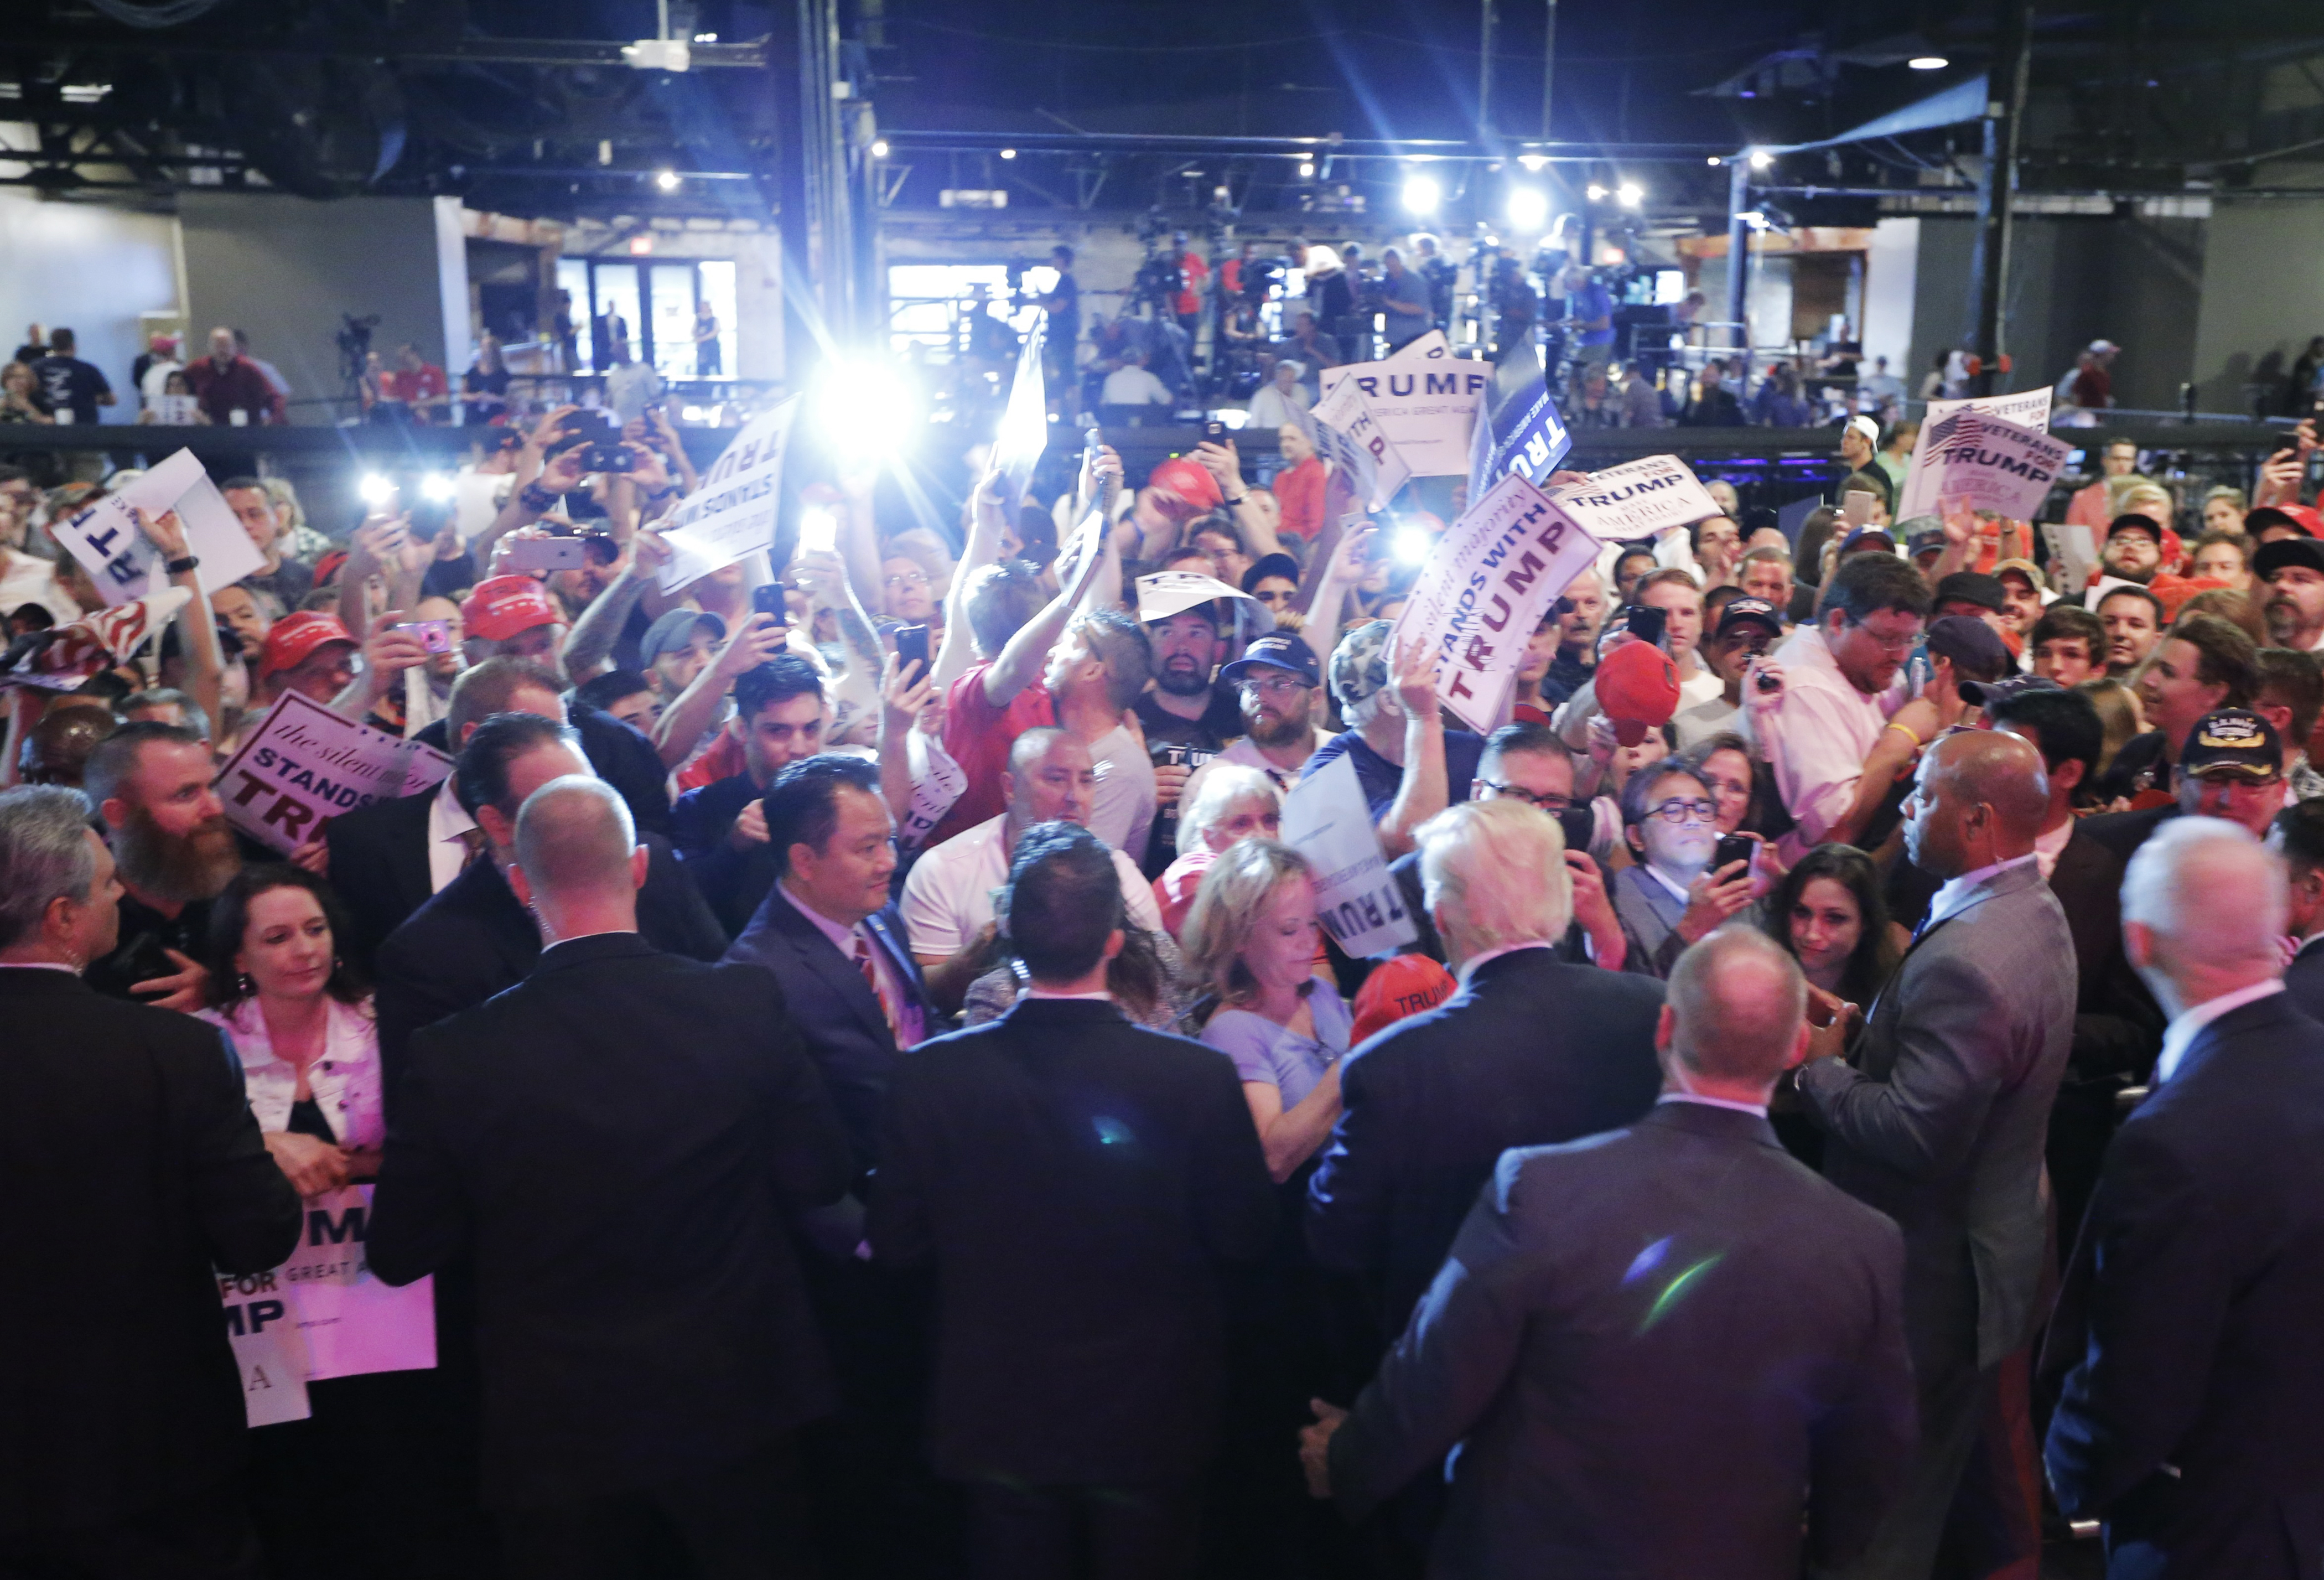 Republican U.S. Presidential candidate Donald Trump greets the crowd at a campaign rally at Gilley's in Dallas